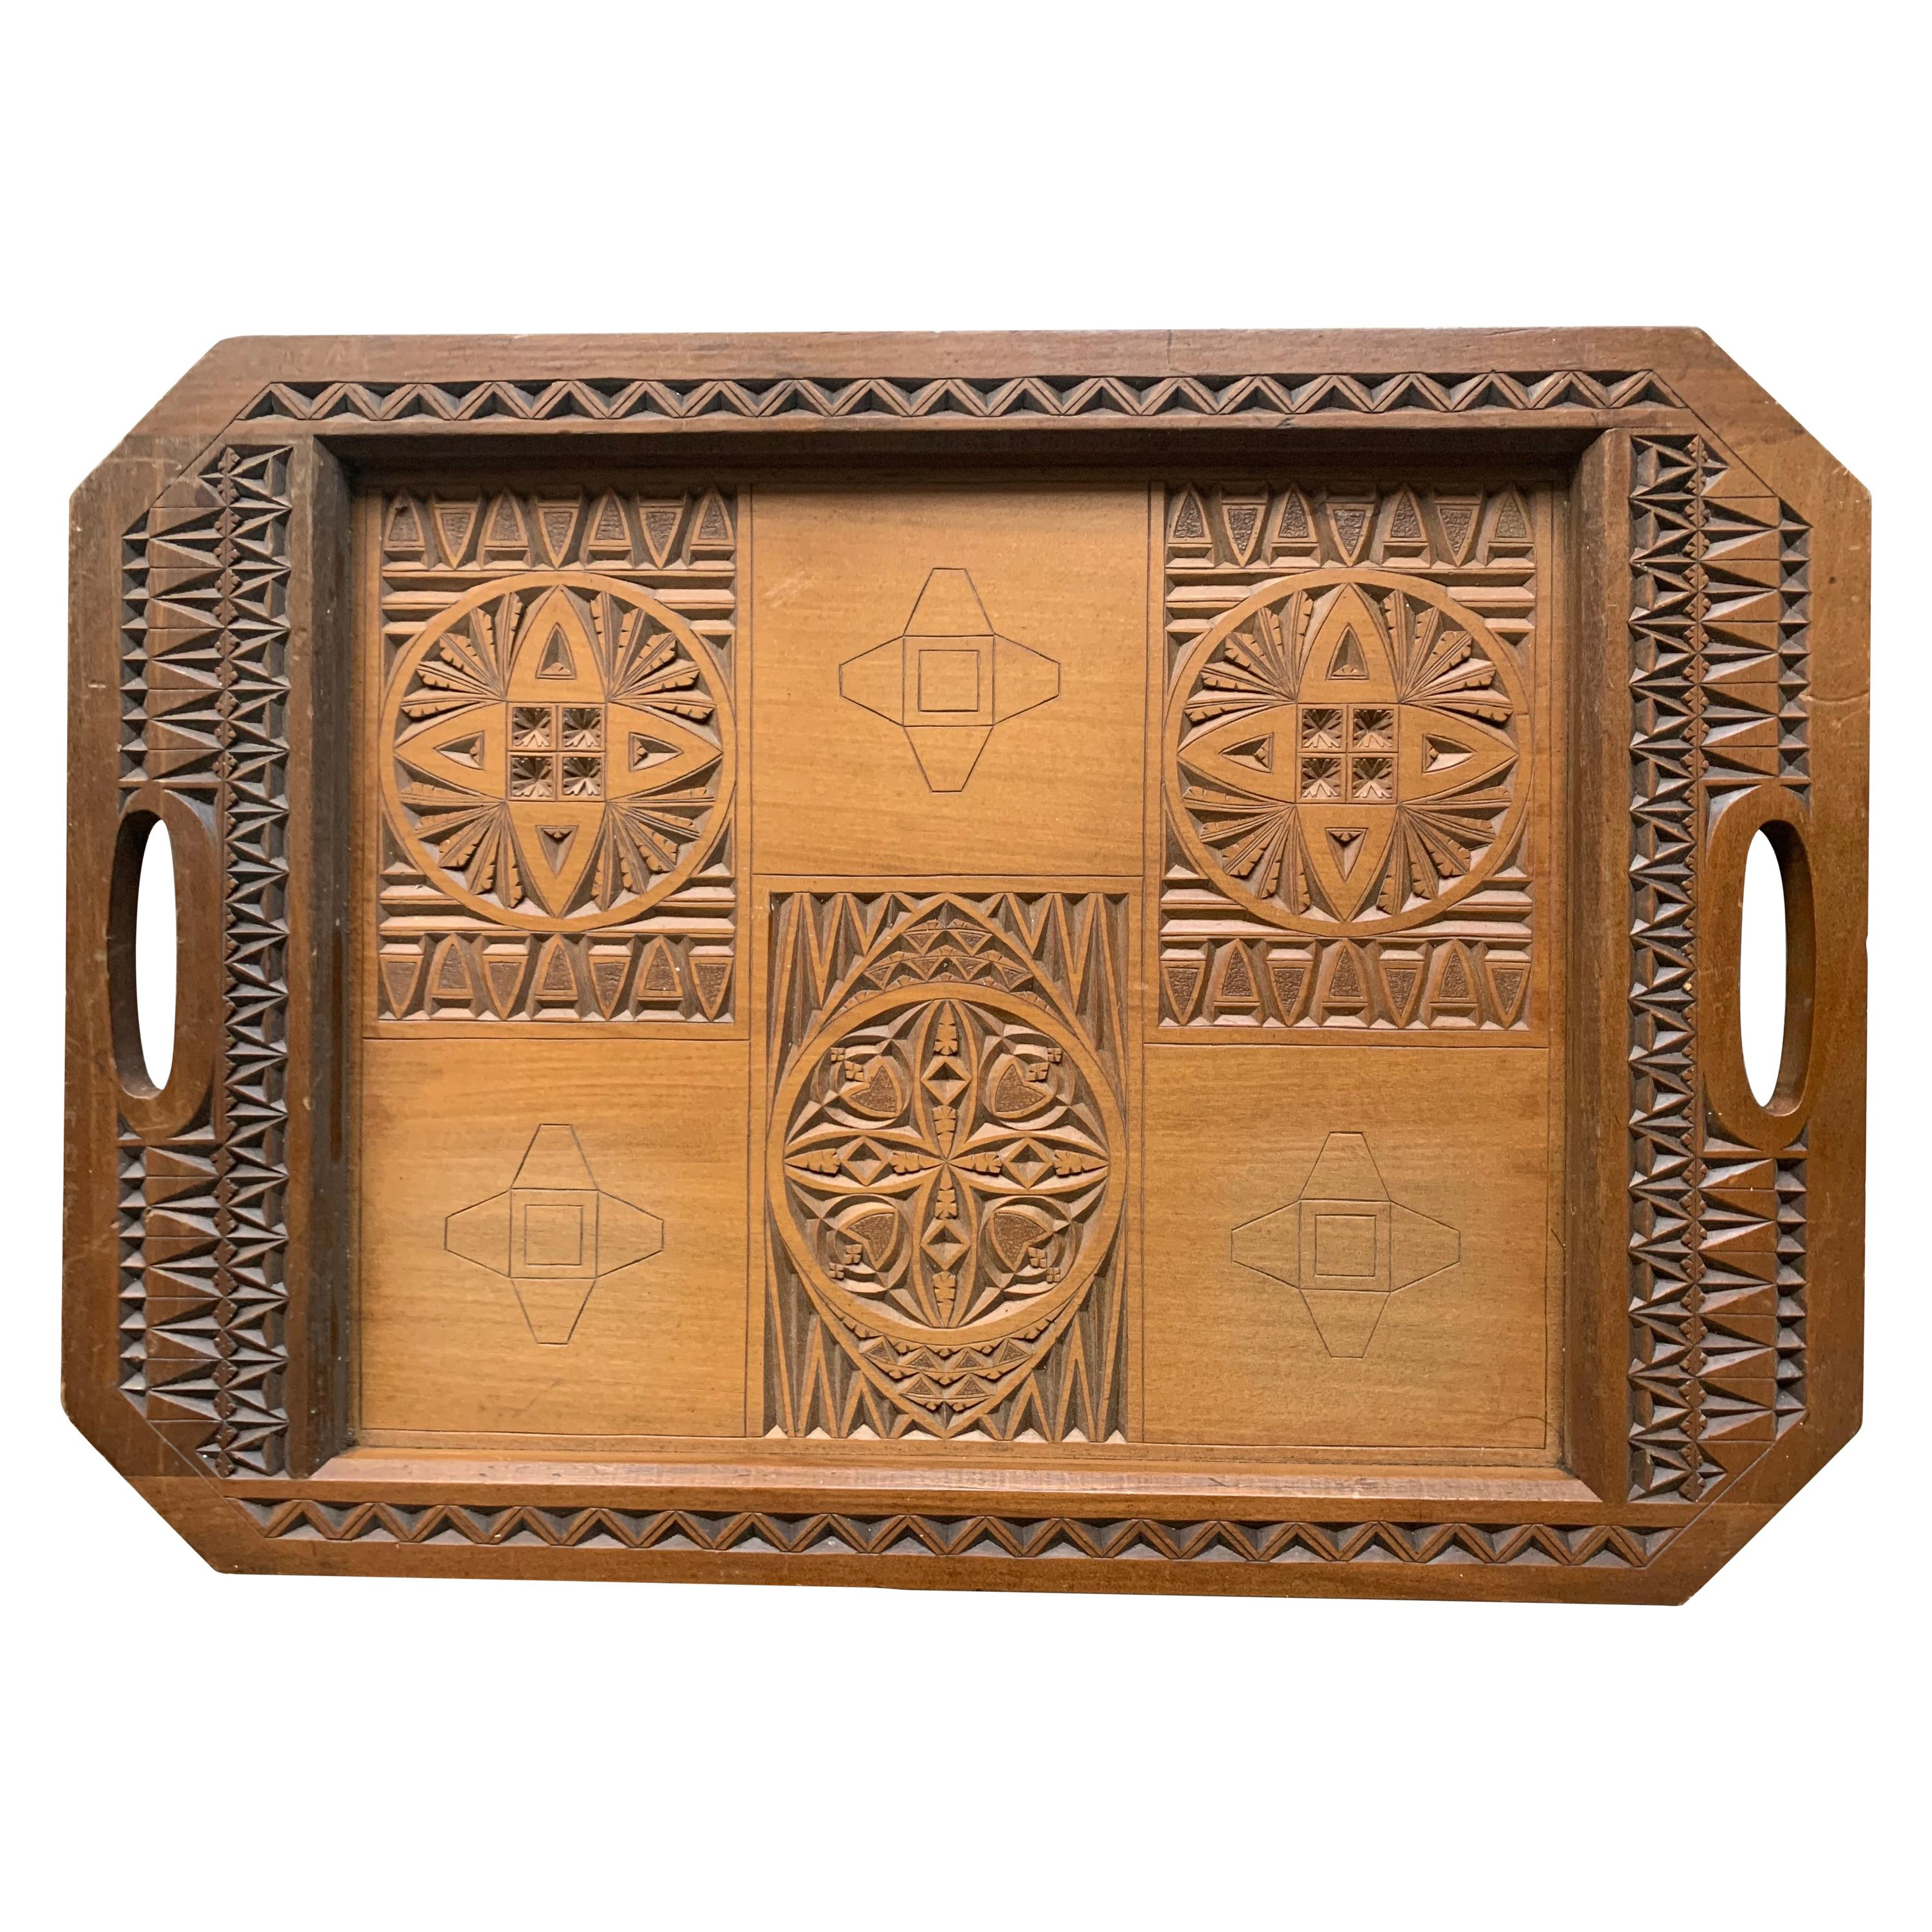 Arts & Crafts Folk Art Serving Tray with Hand Carved Geometric Motifs